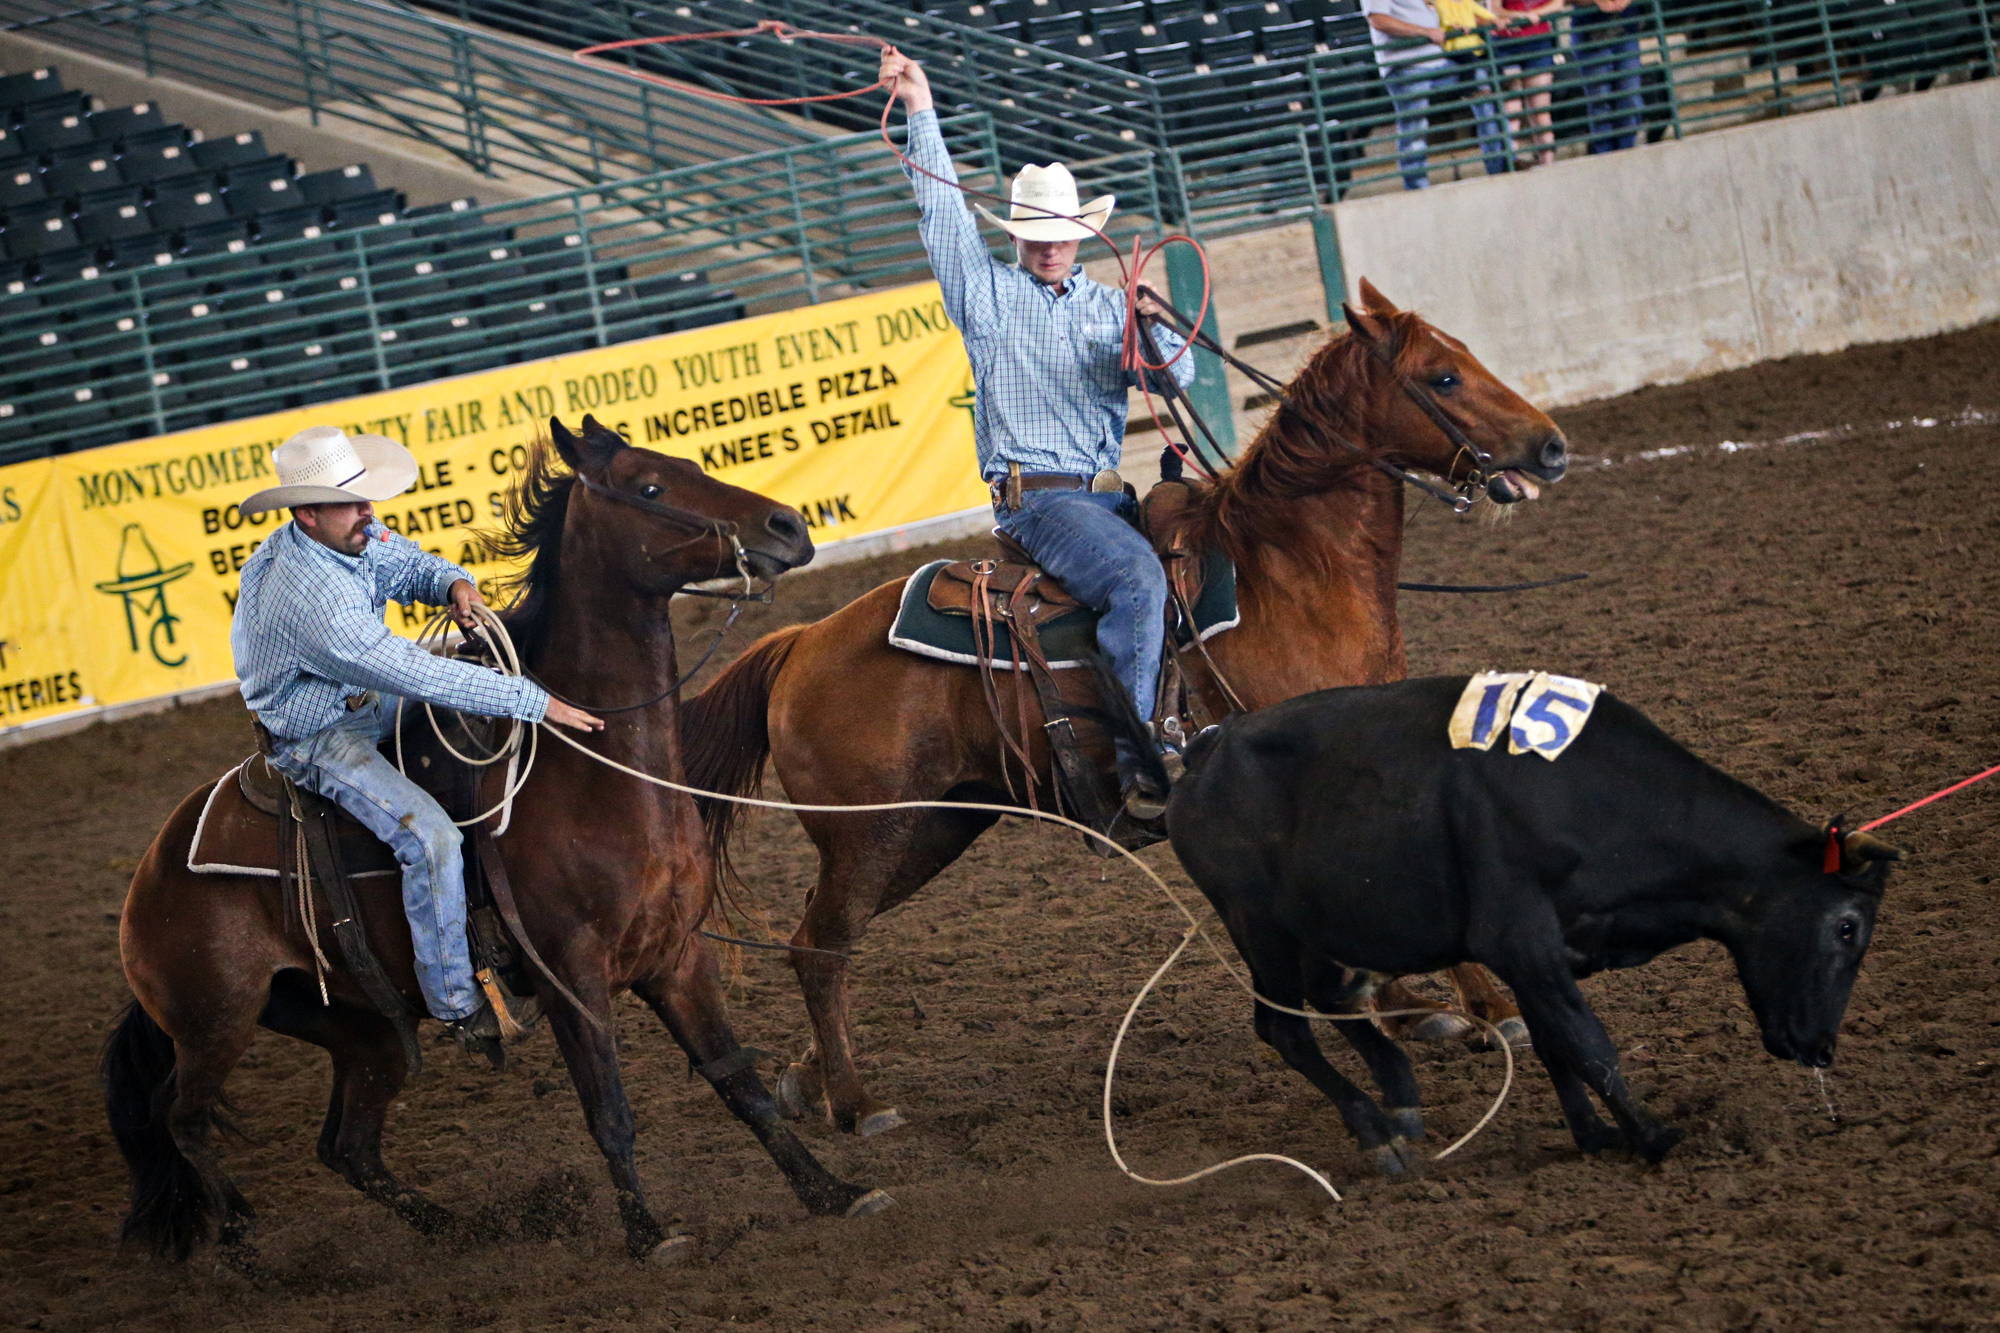 Montgomery County Fair S Ranch Rodeo Makes Cowboying A